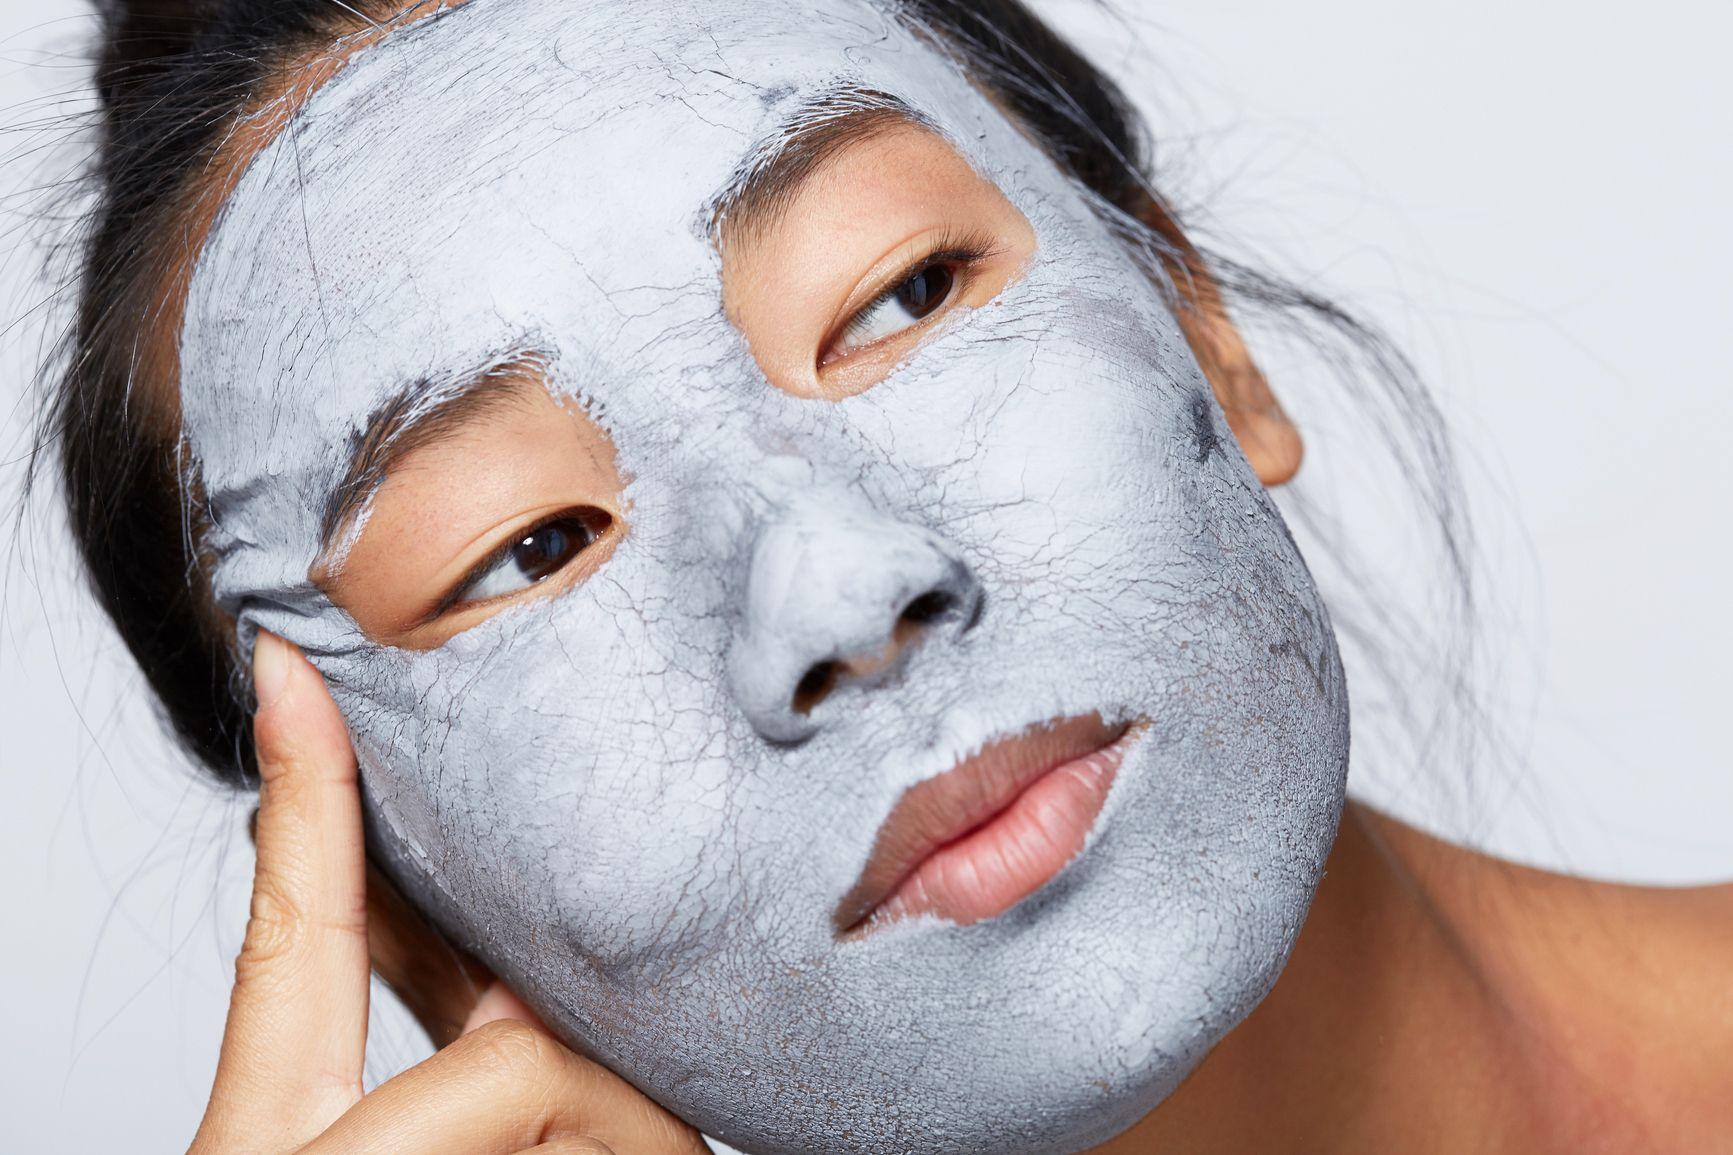 13 Best Clay Face Masks - Top Clay Face Masks for Acne